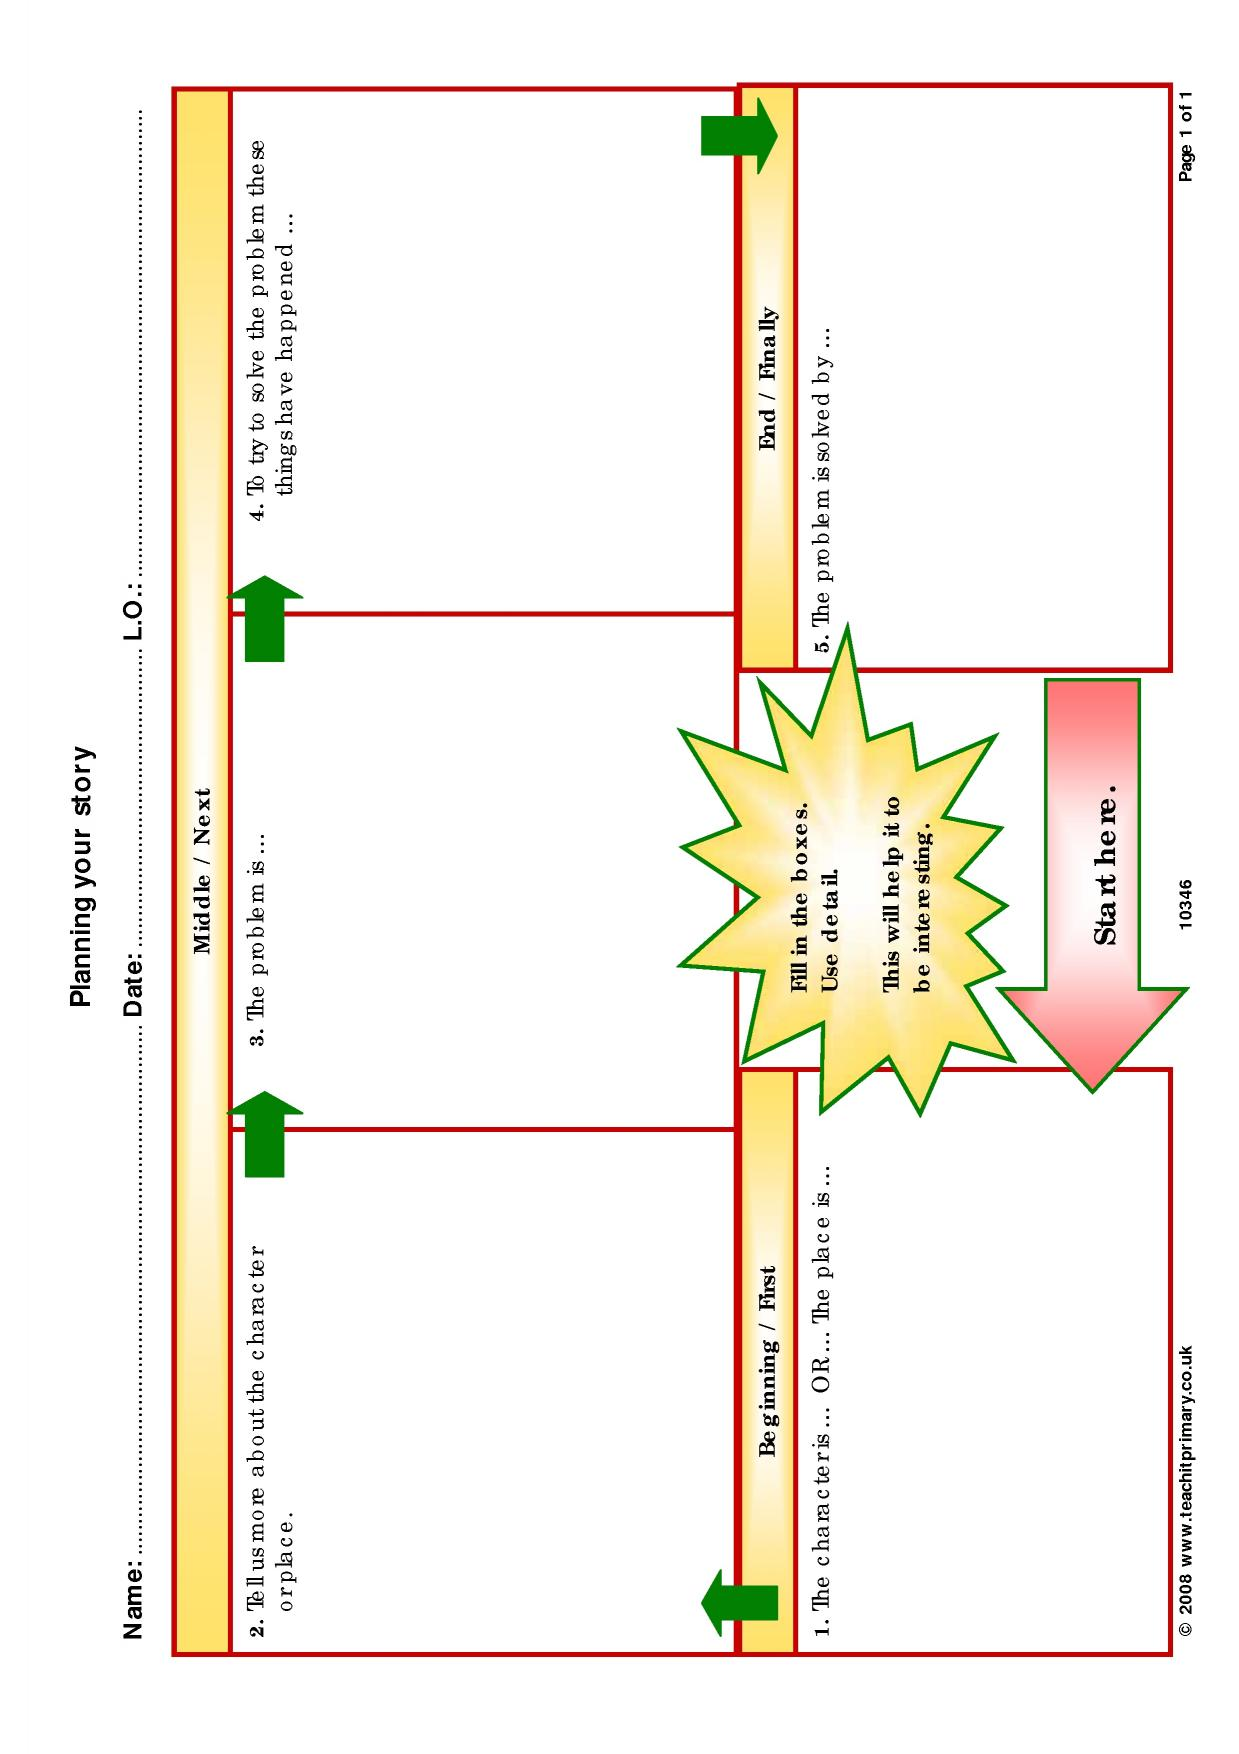 Ks2 structuring plots and planning teachit primary for Story planner free